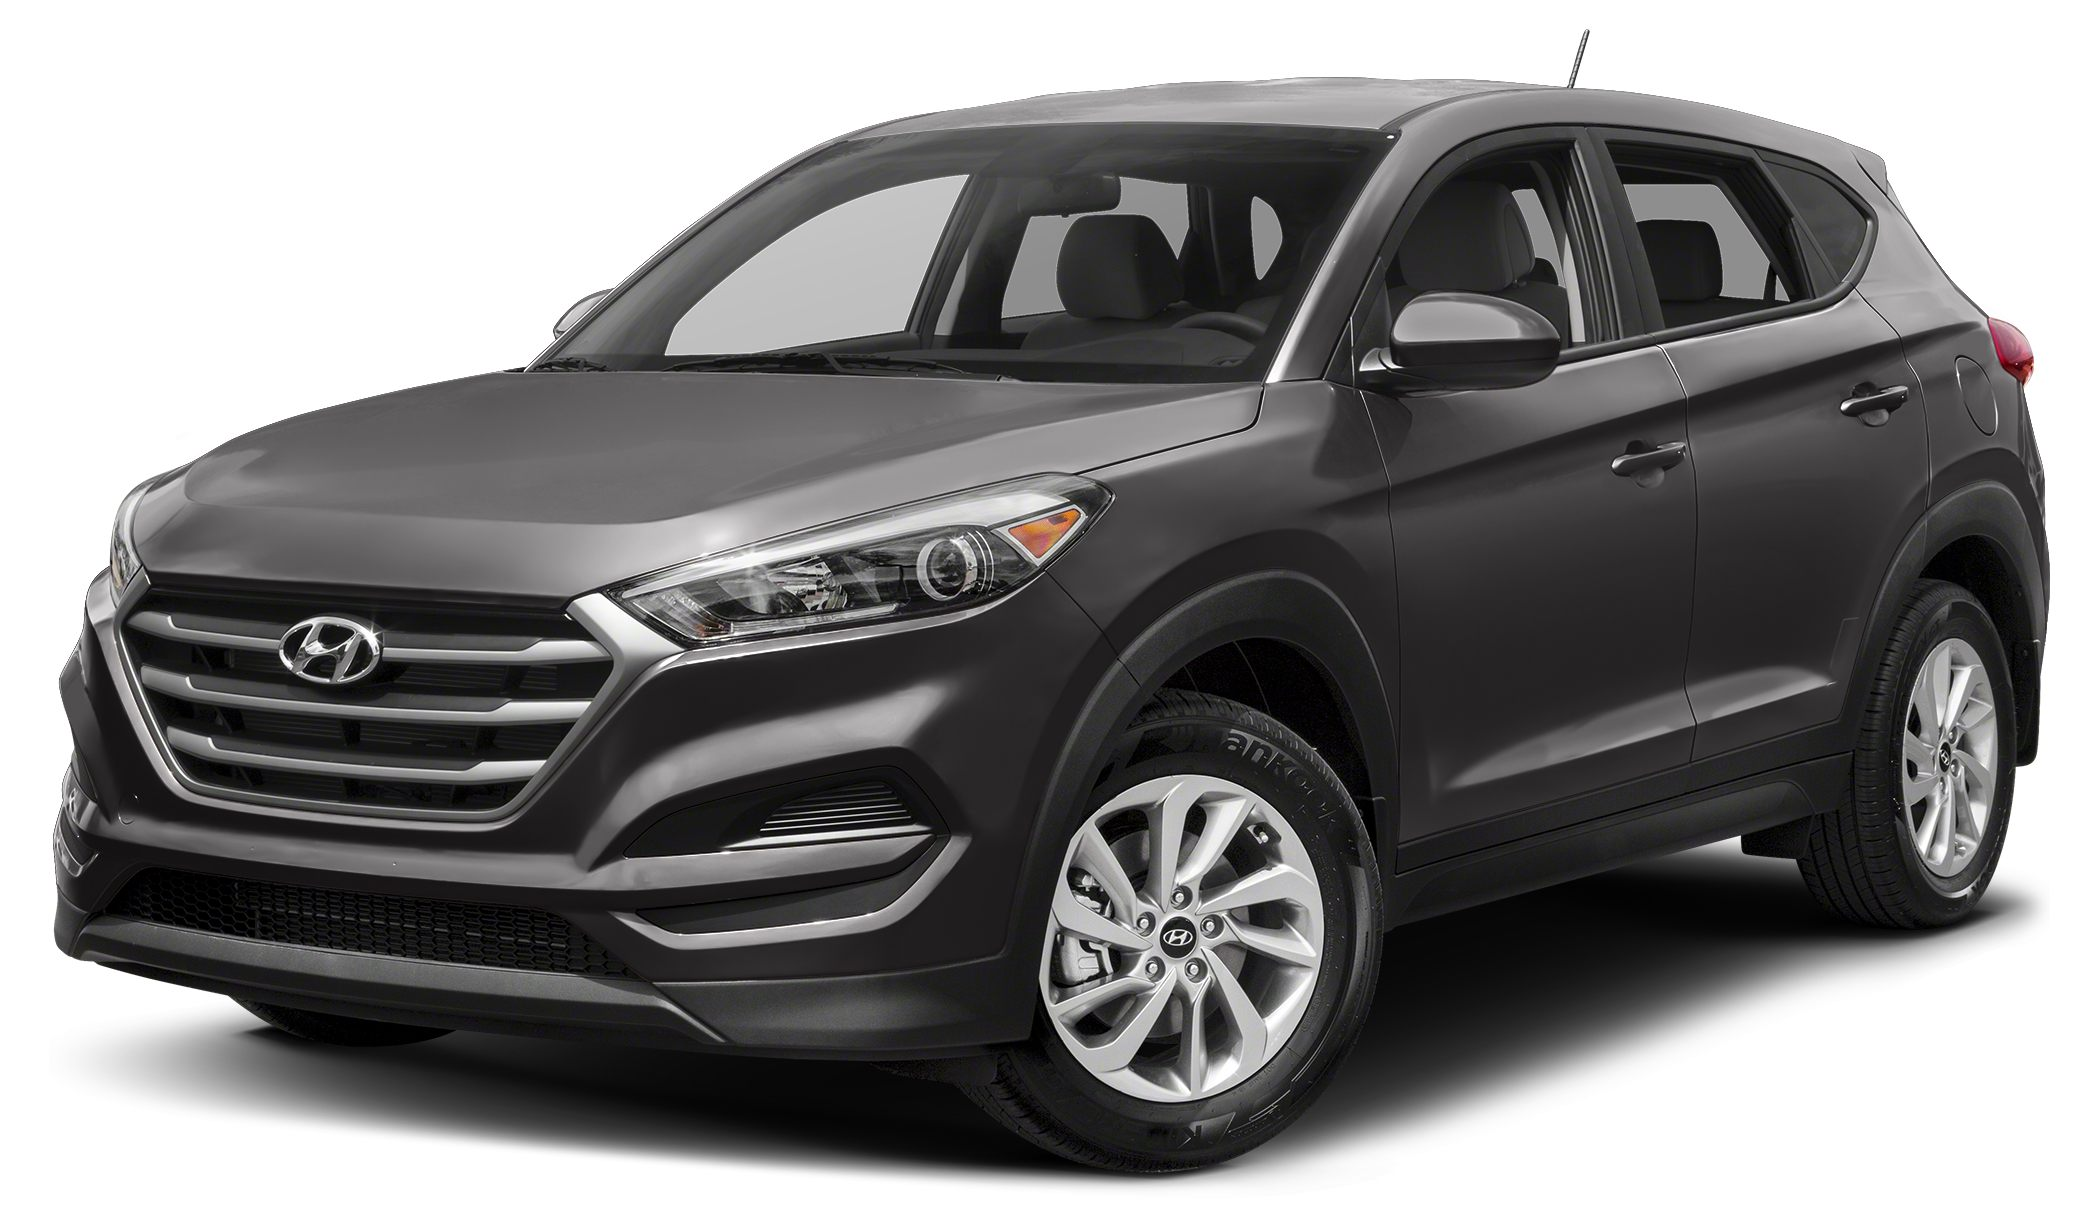 2017 Hyundai Tucson Eco New Arrival -Great Gas Mileage- Bluetooth Great looking Gray Tucson Eco